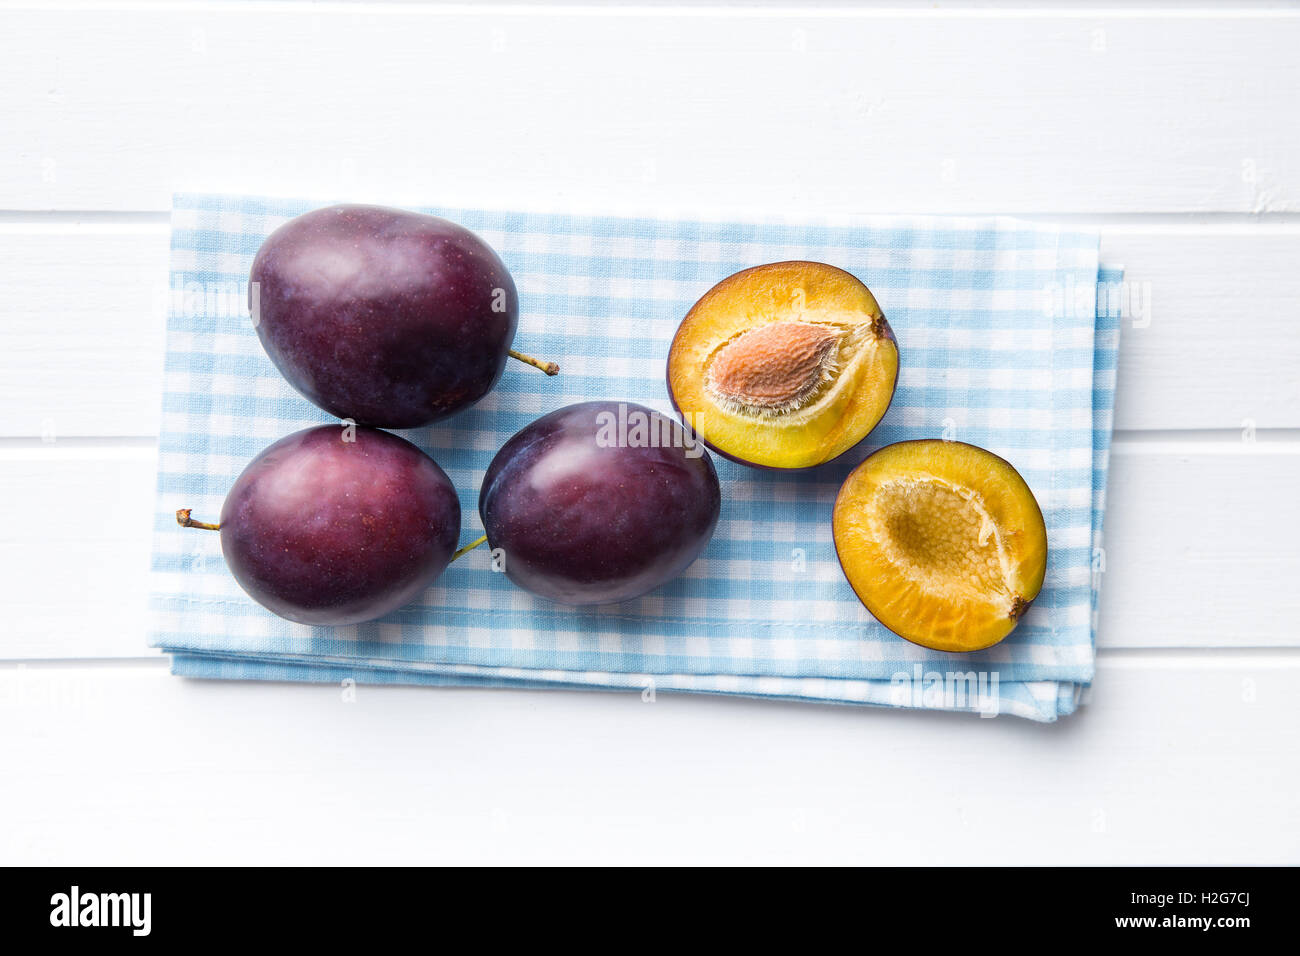 Halved ripe plums on kitchen table. Top view. - Stock Image